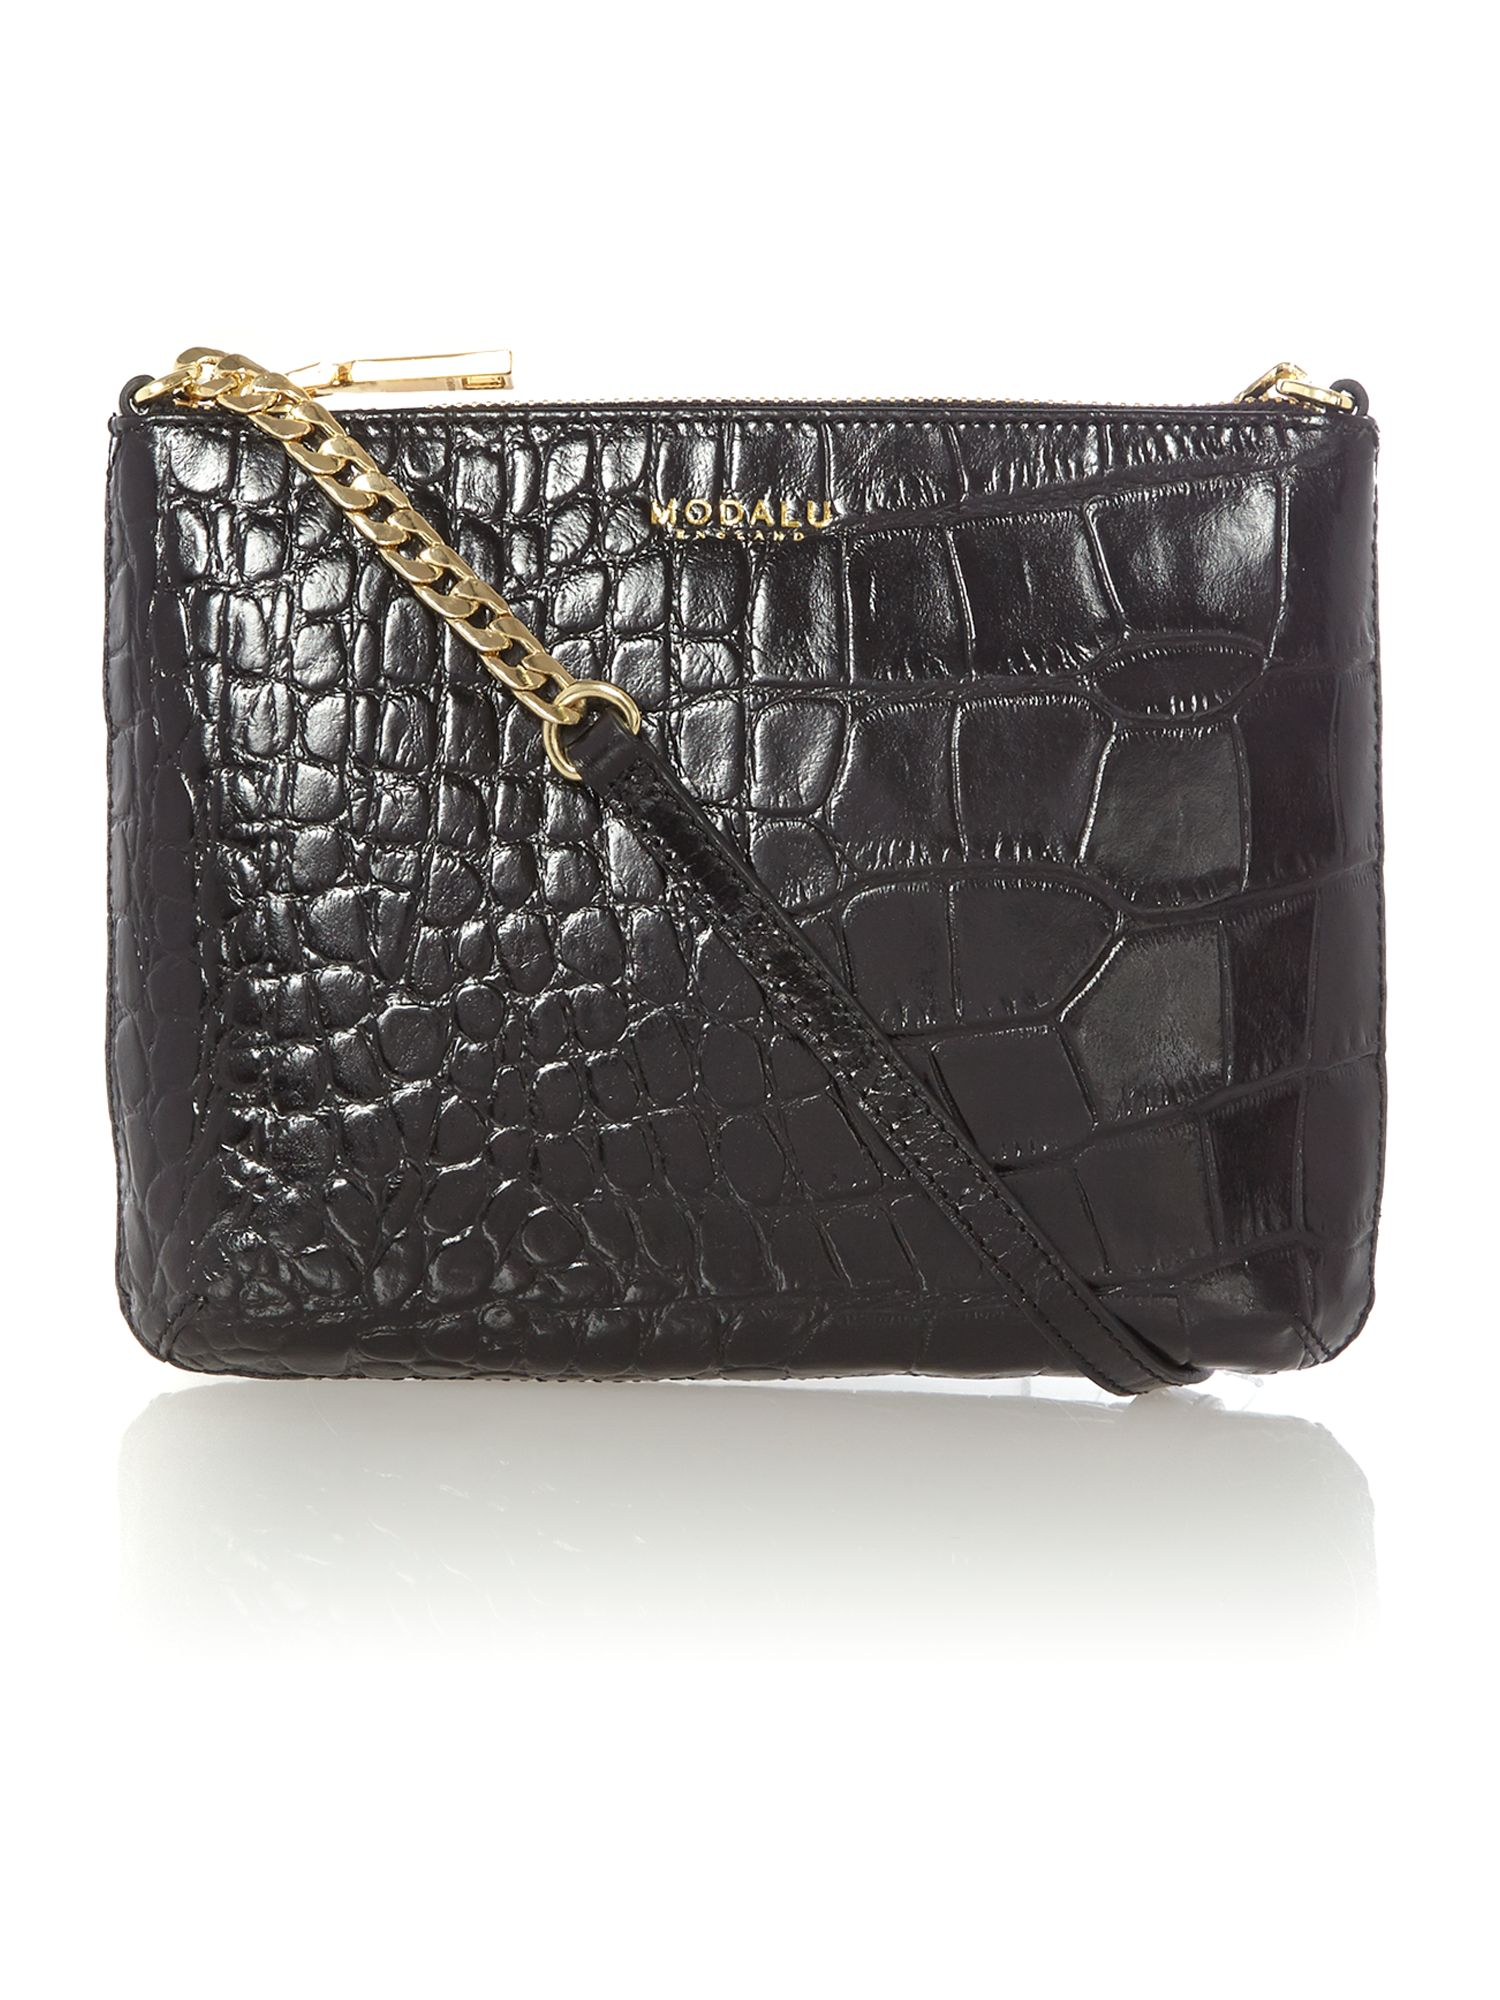 Twiggy black croc cross body bag